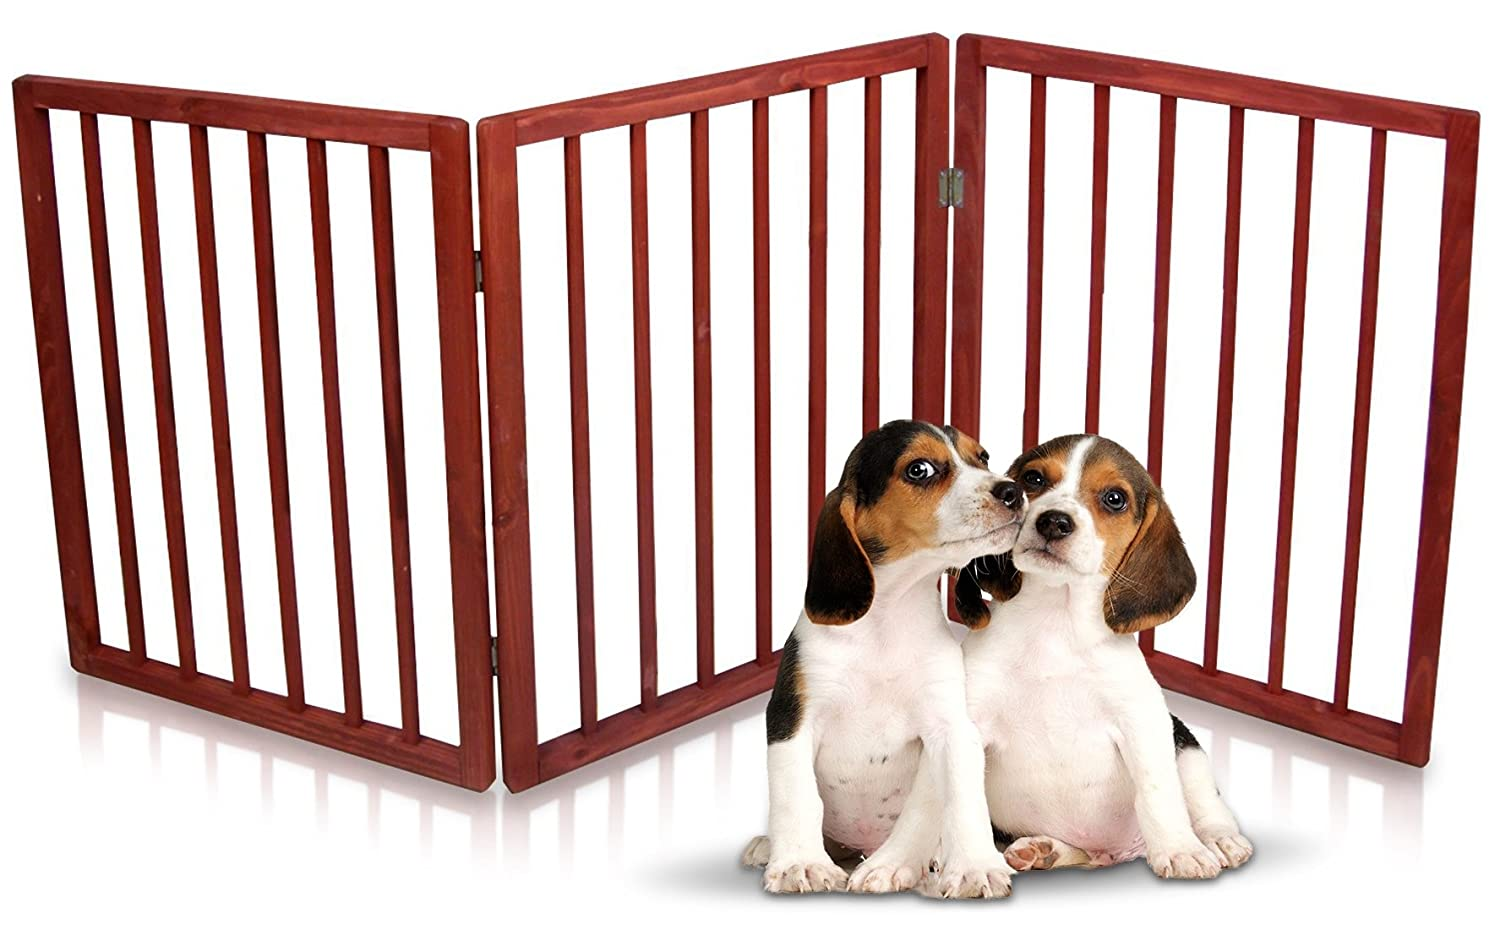 Hoovy Original Pet Gate Freestanding Folding Indoor Safety Wooden Pet Gate Stairway, Hallway, Room Divider for Small Pets Dogs Goes with Home Decor